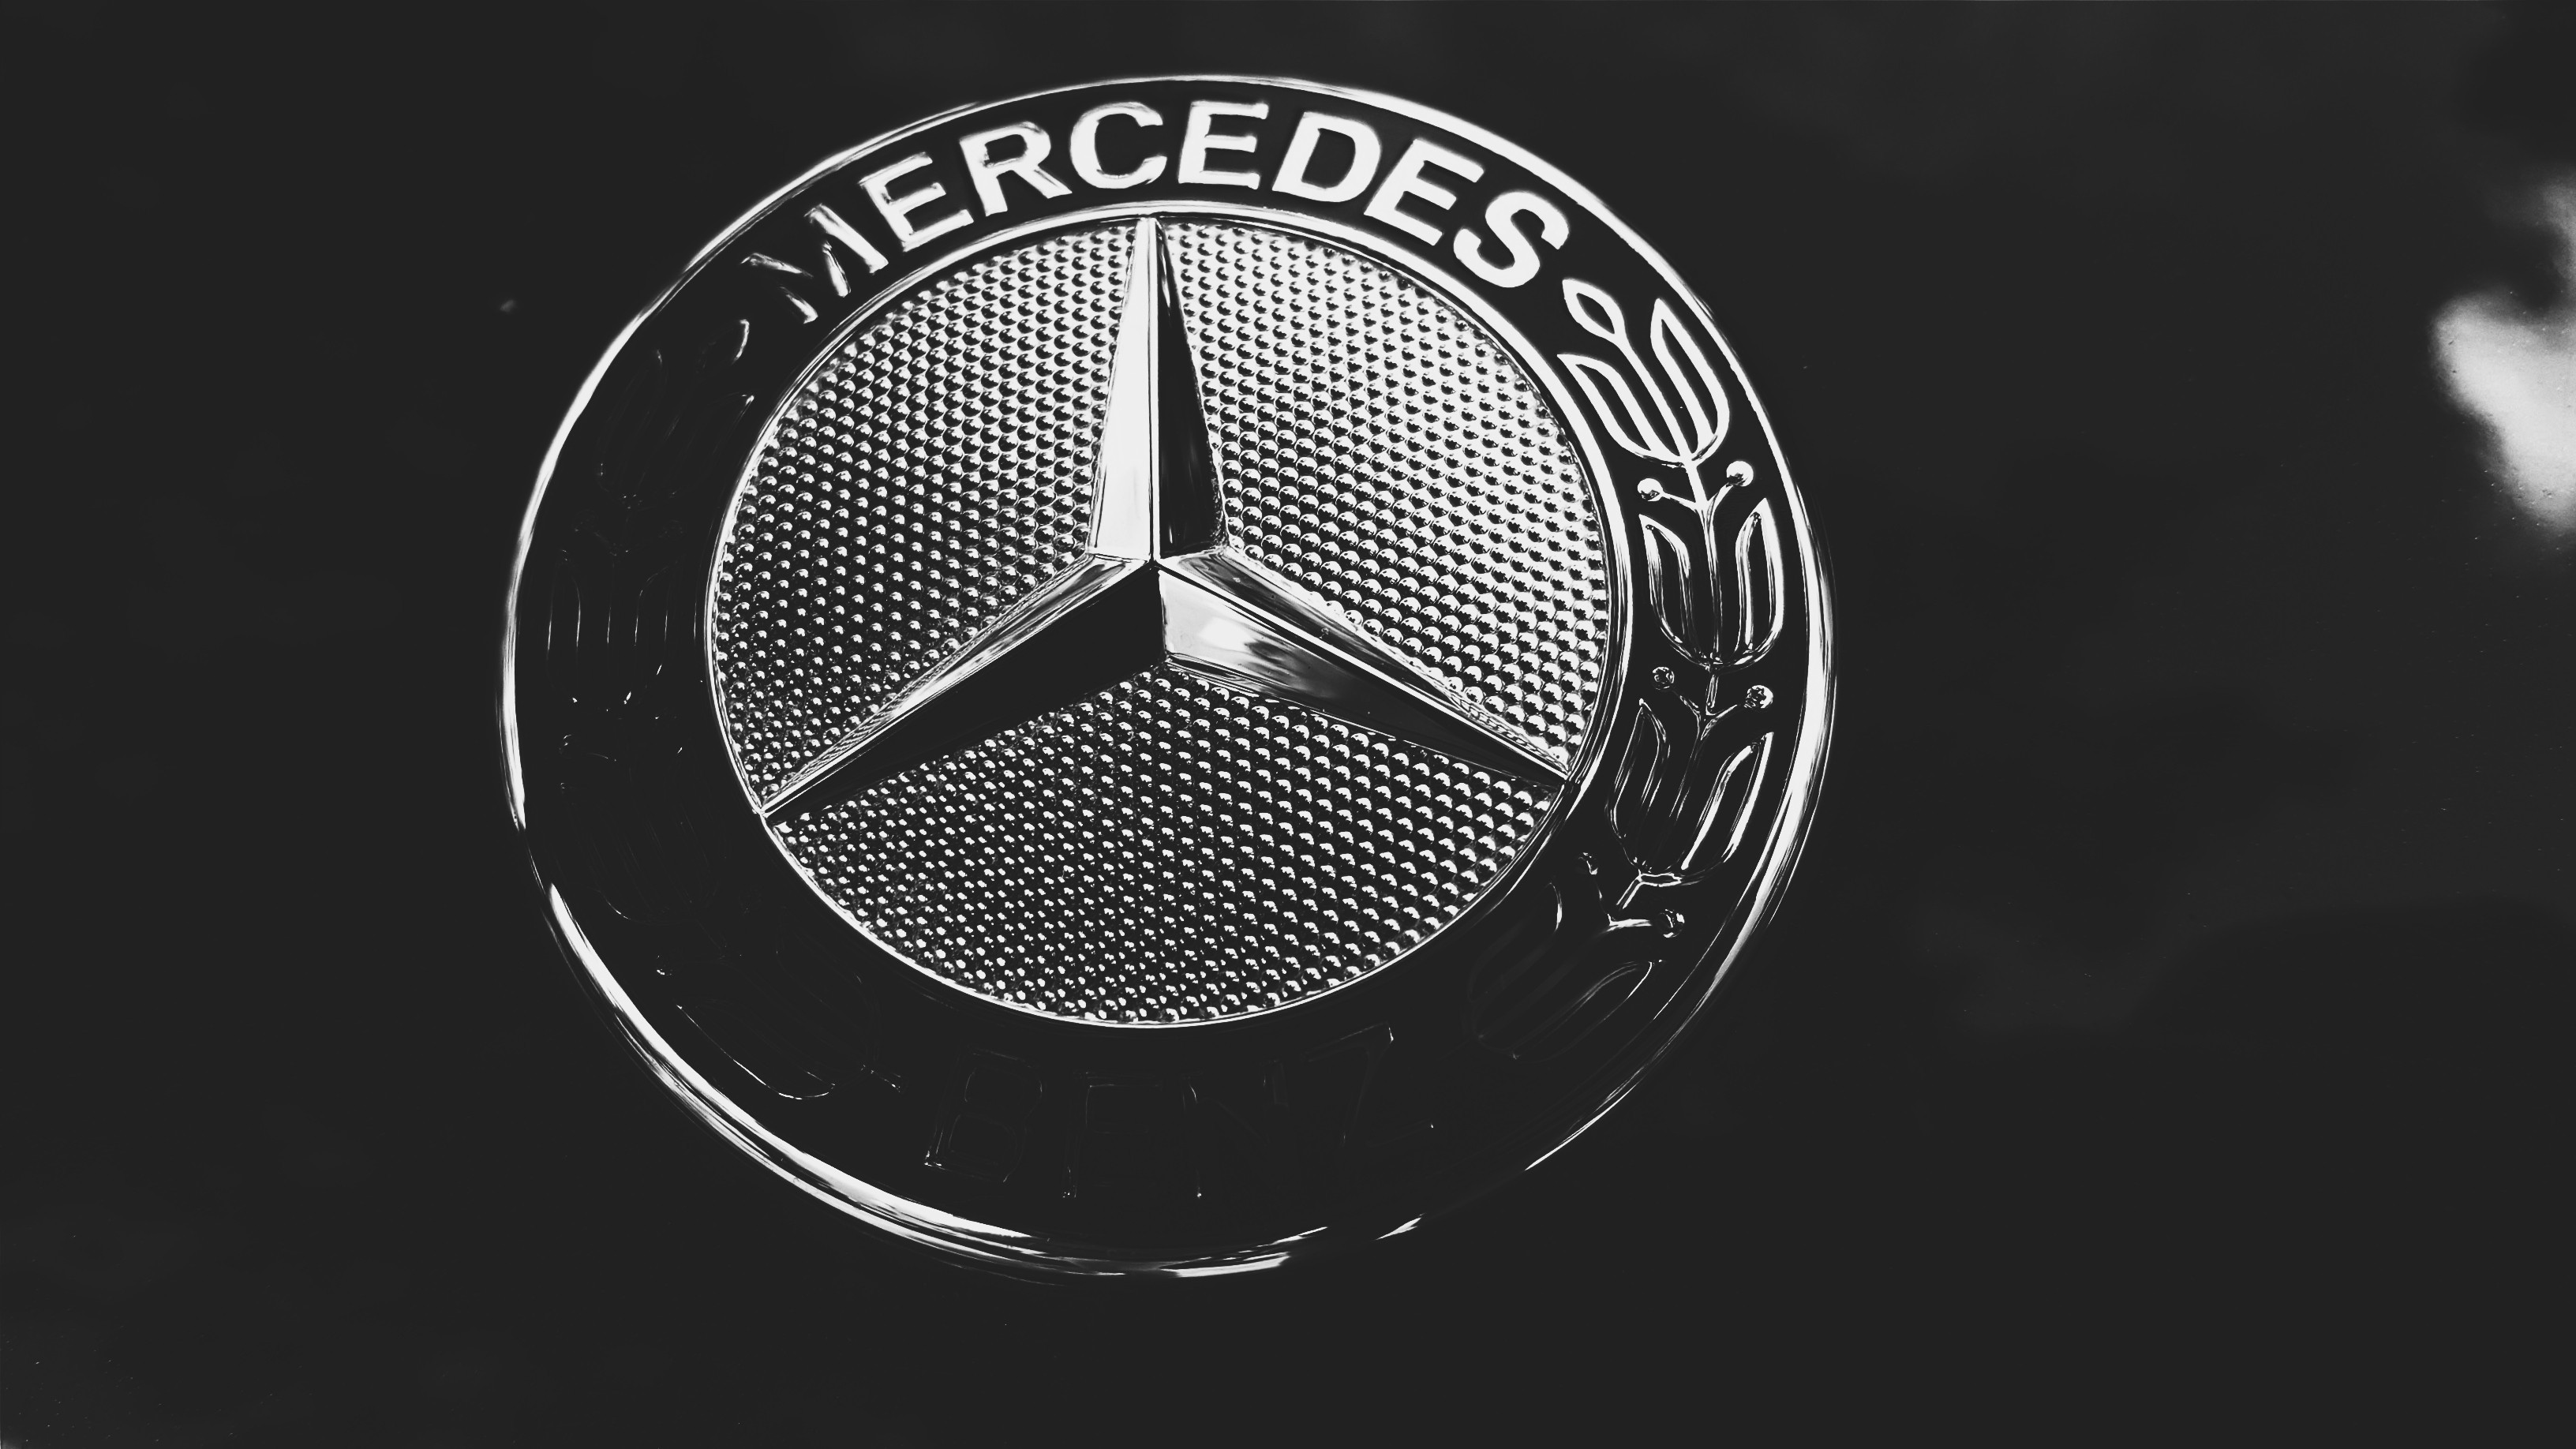 Amg logo wallpapers 1920x1080 vehicles mercedes benz c63 amg wallpaper voltagebd Gallery